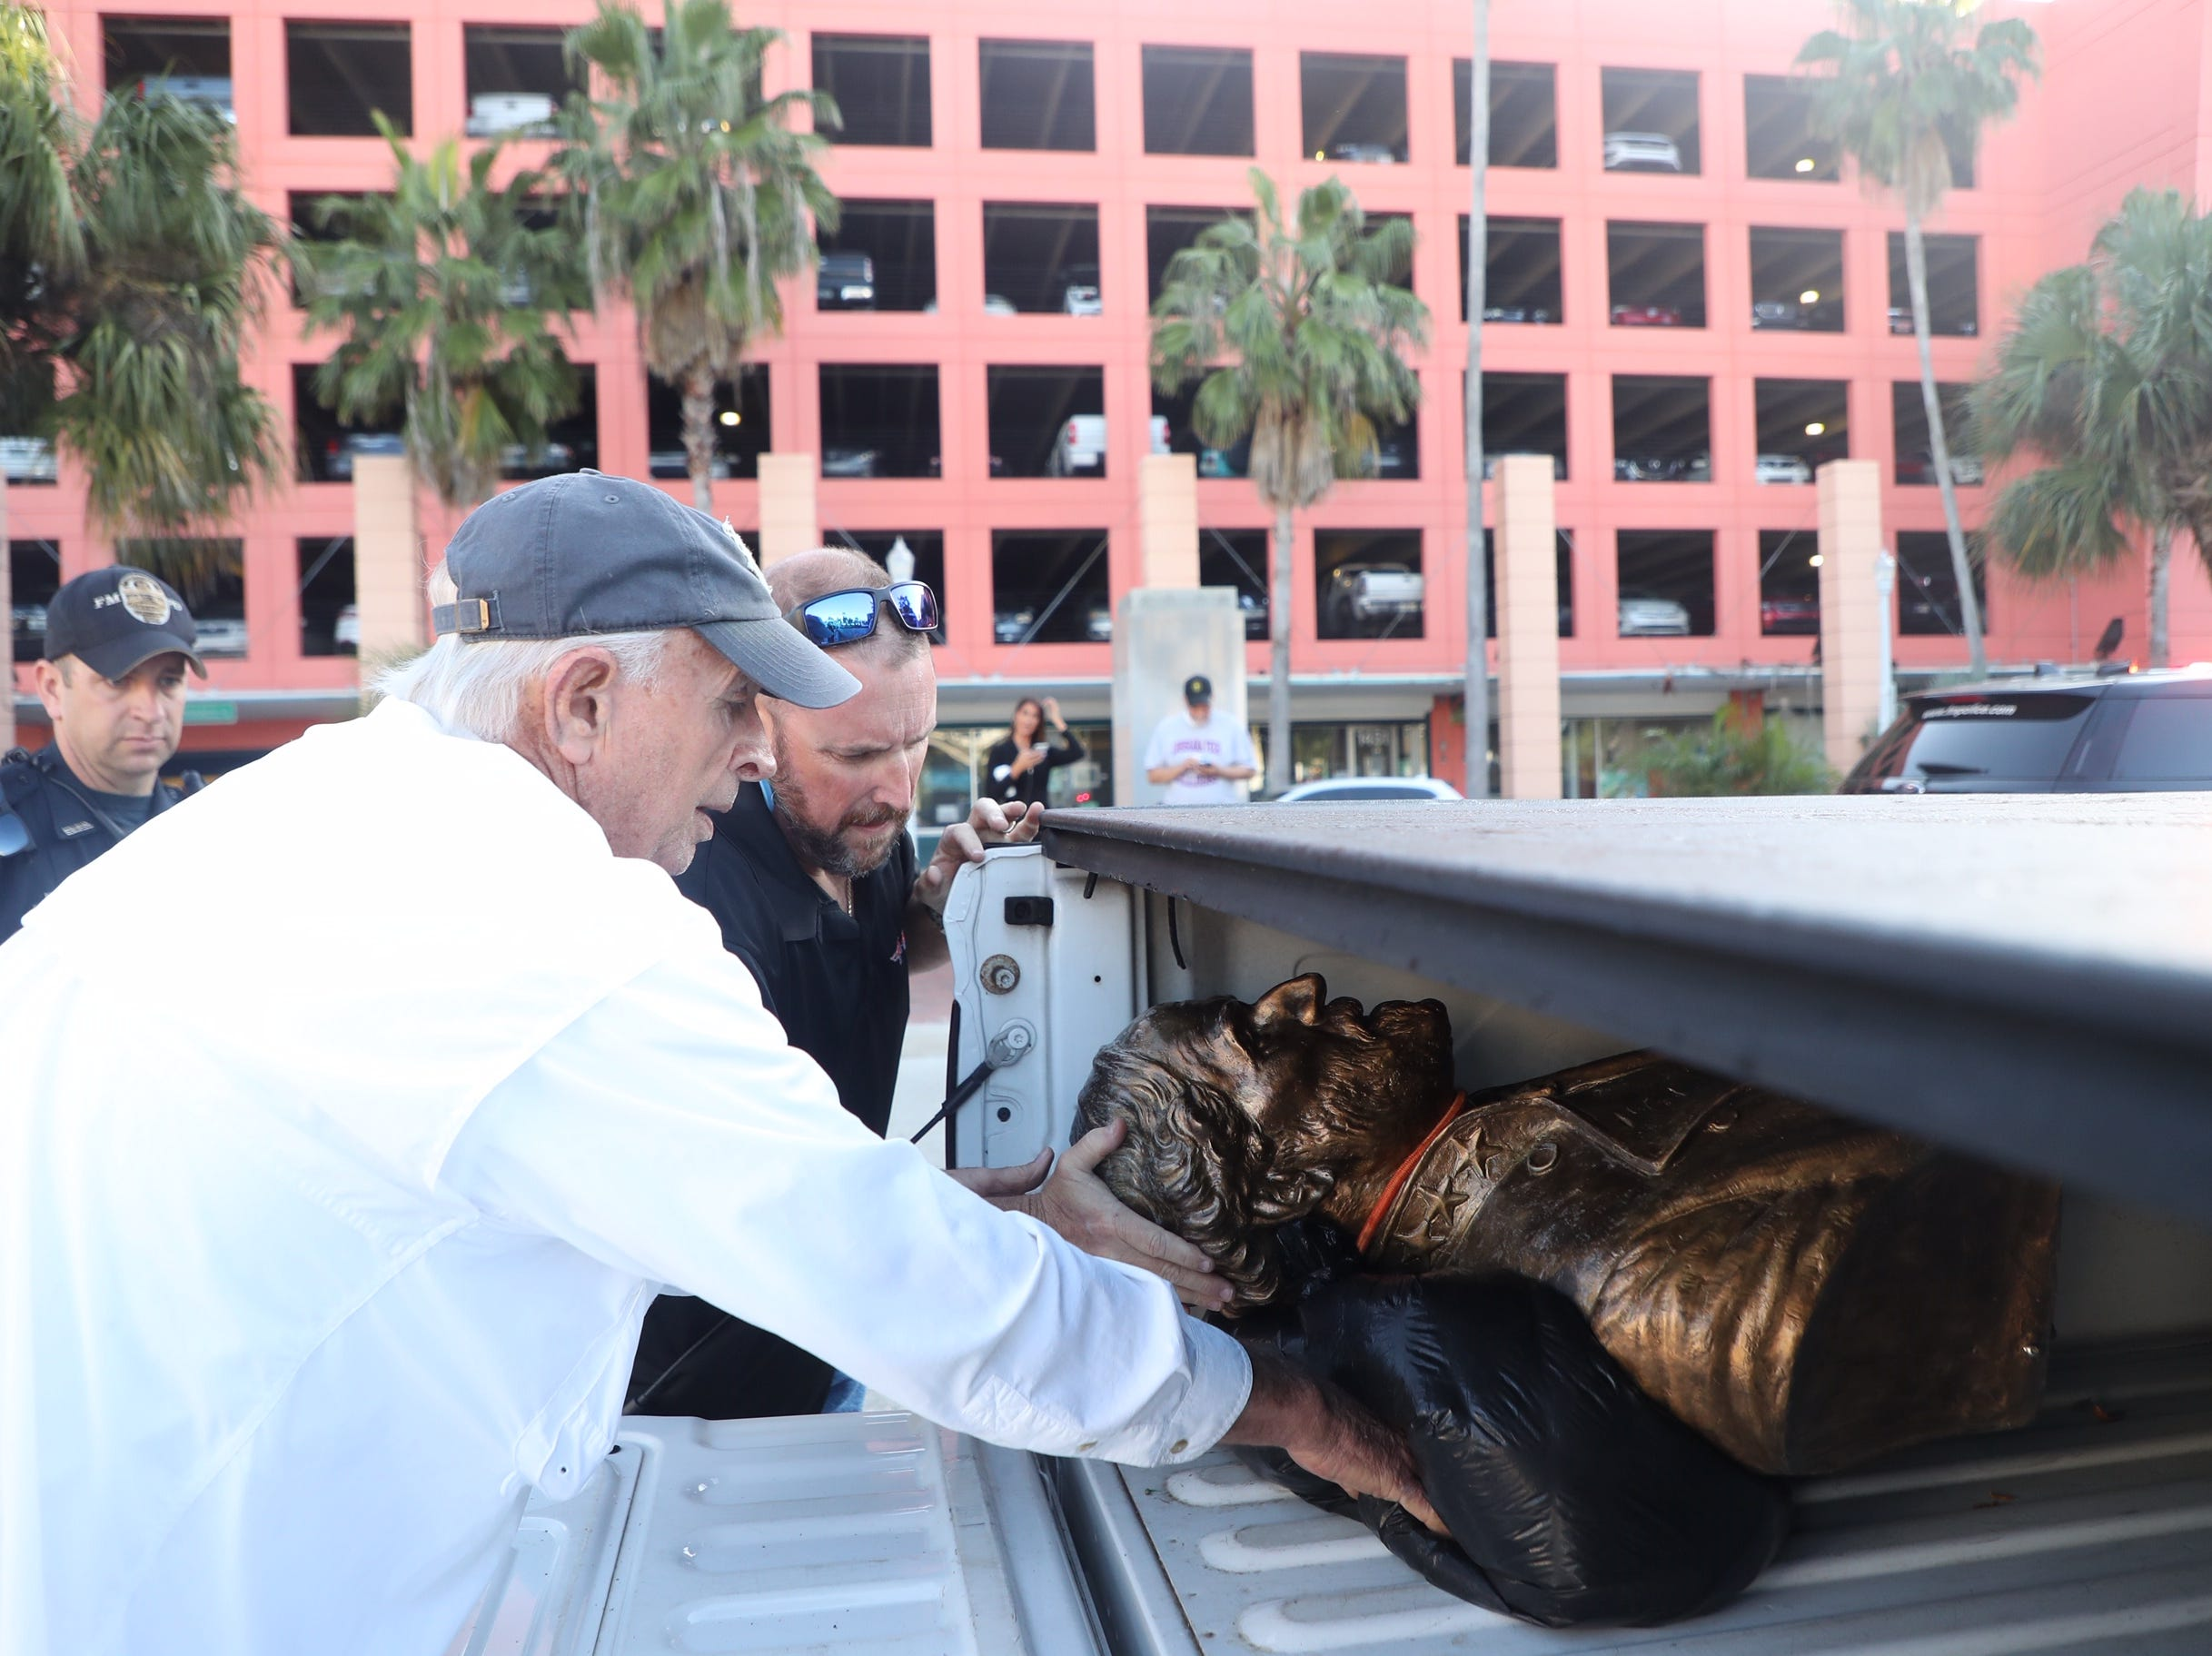 Members of the Sons of Confederate Veterans placed the Robert E. Lee bust in the back of a vehicle in downtown Fort Myers. It is unclear what will happen to the monument.